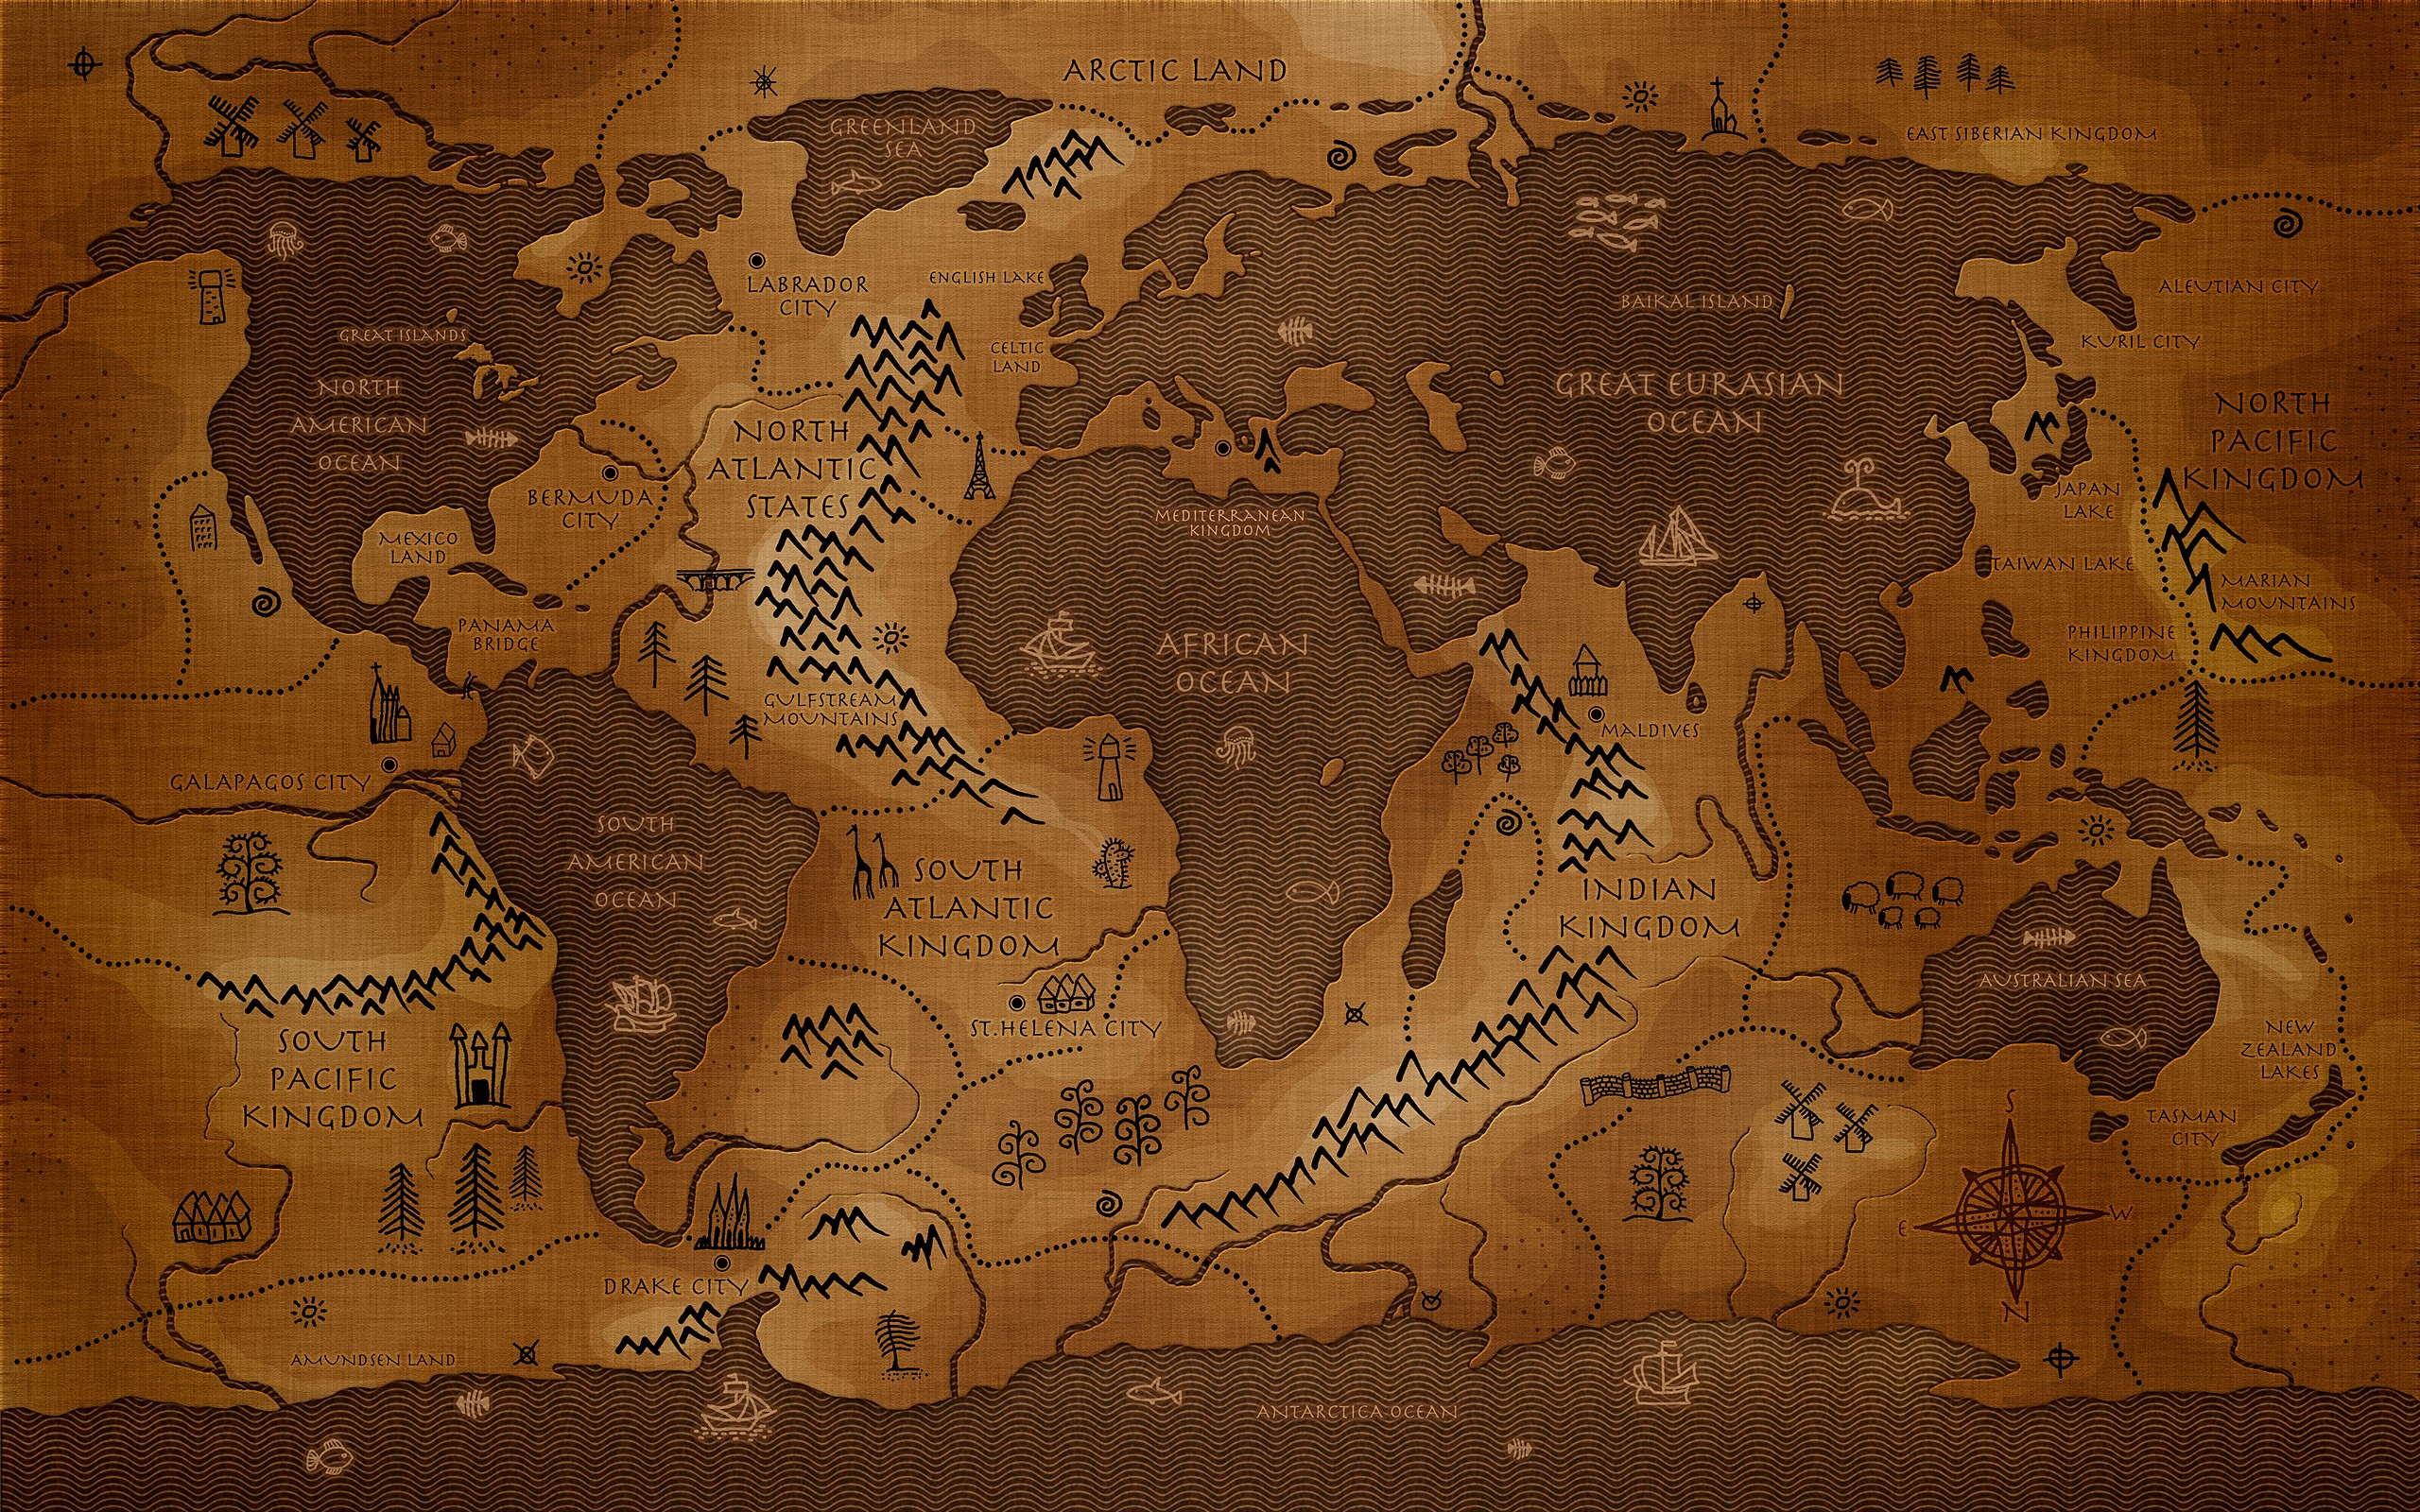 World map background download free stunning high resolution 2560x1600 background travel map wallpaper high quality download 3840x2160 wallpaper world gumiabroncs Image collections